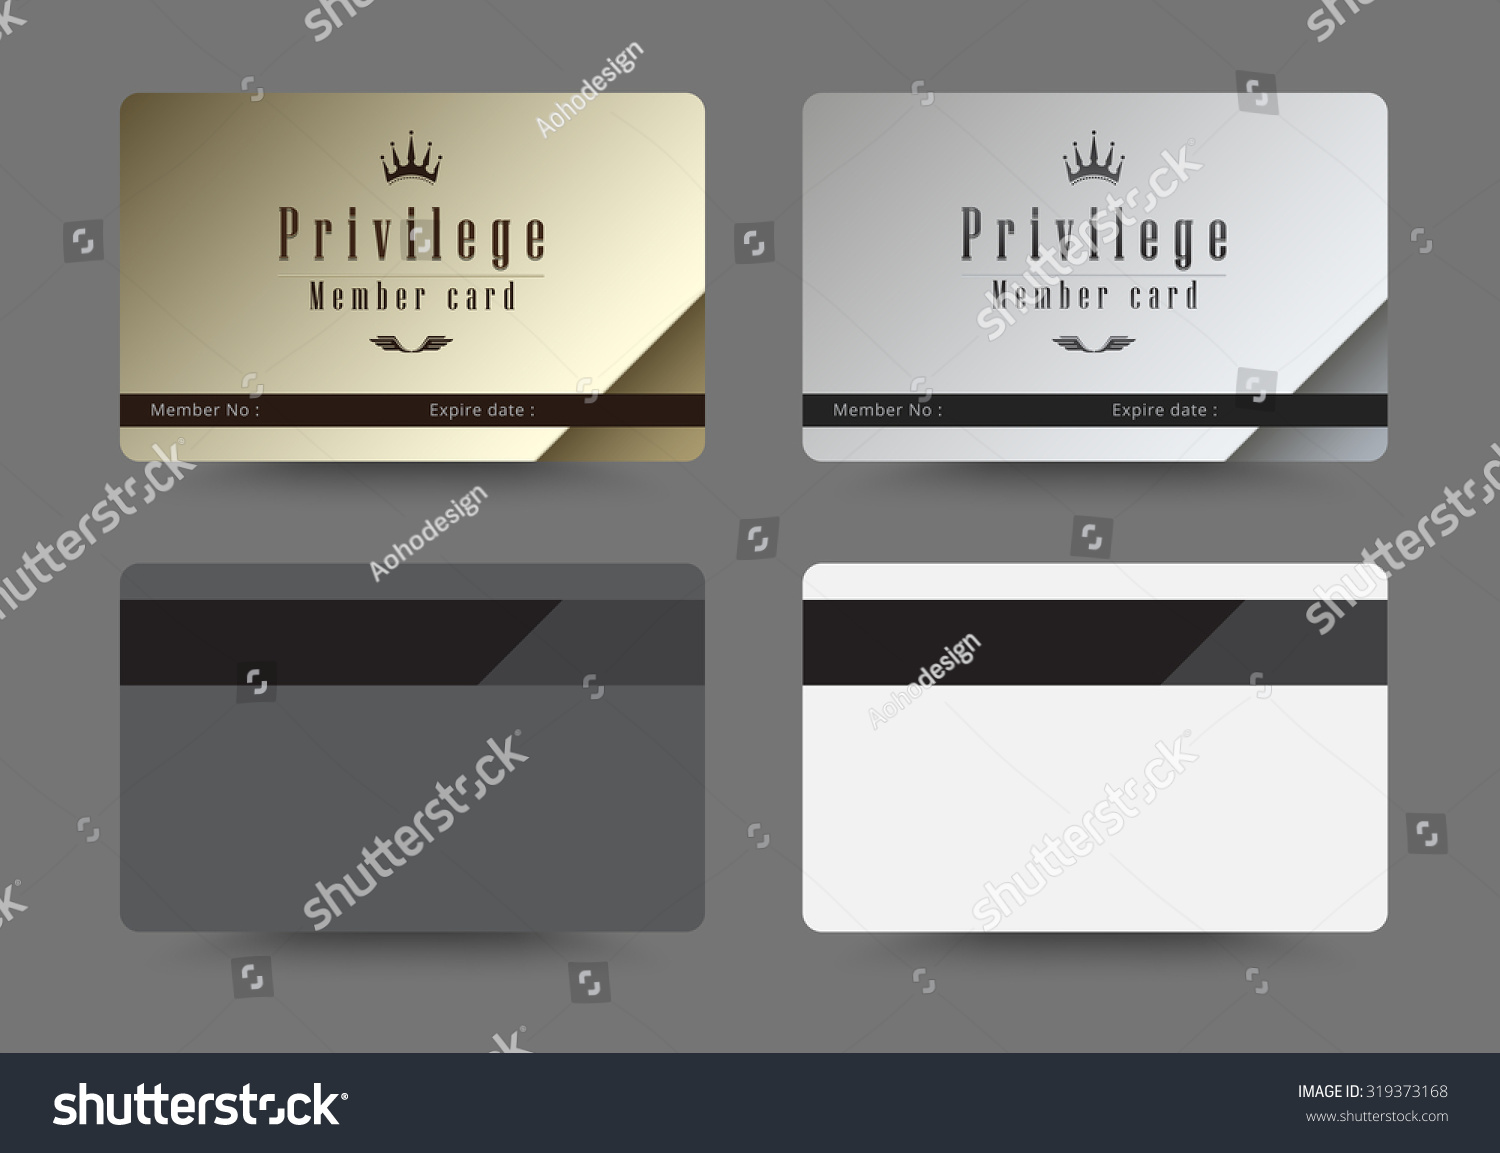 Gold And Silver Privilege Card For Member Template Design. Vector  Illustration.  Membership Card Design